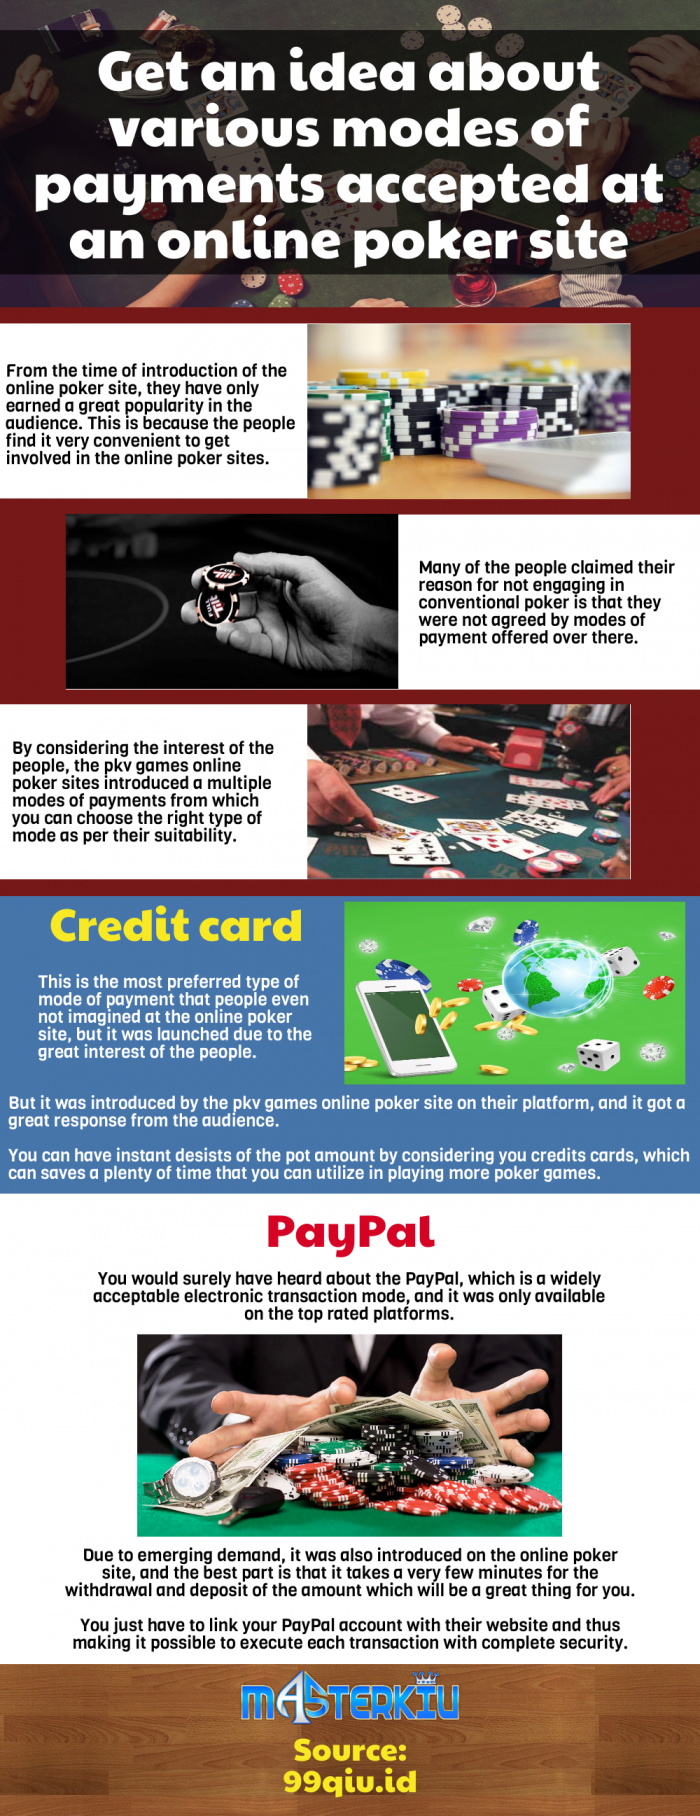 Things to keep in mind which choosing a poker variant